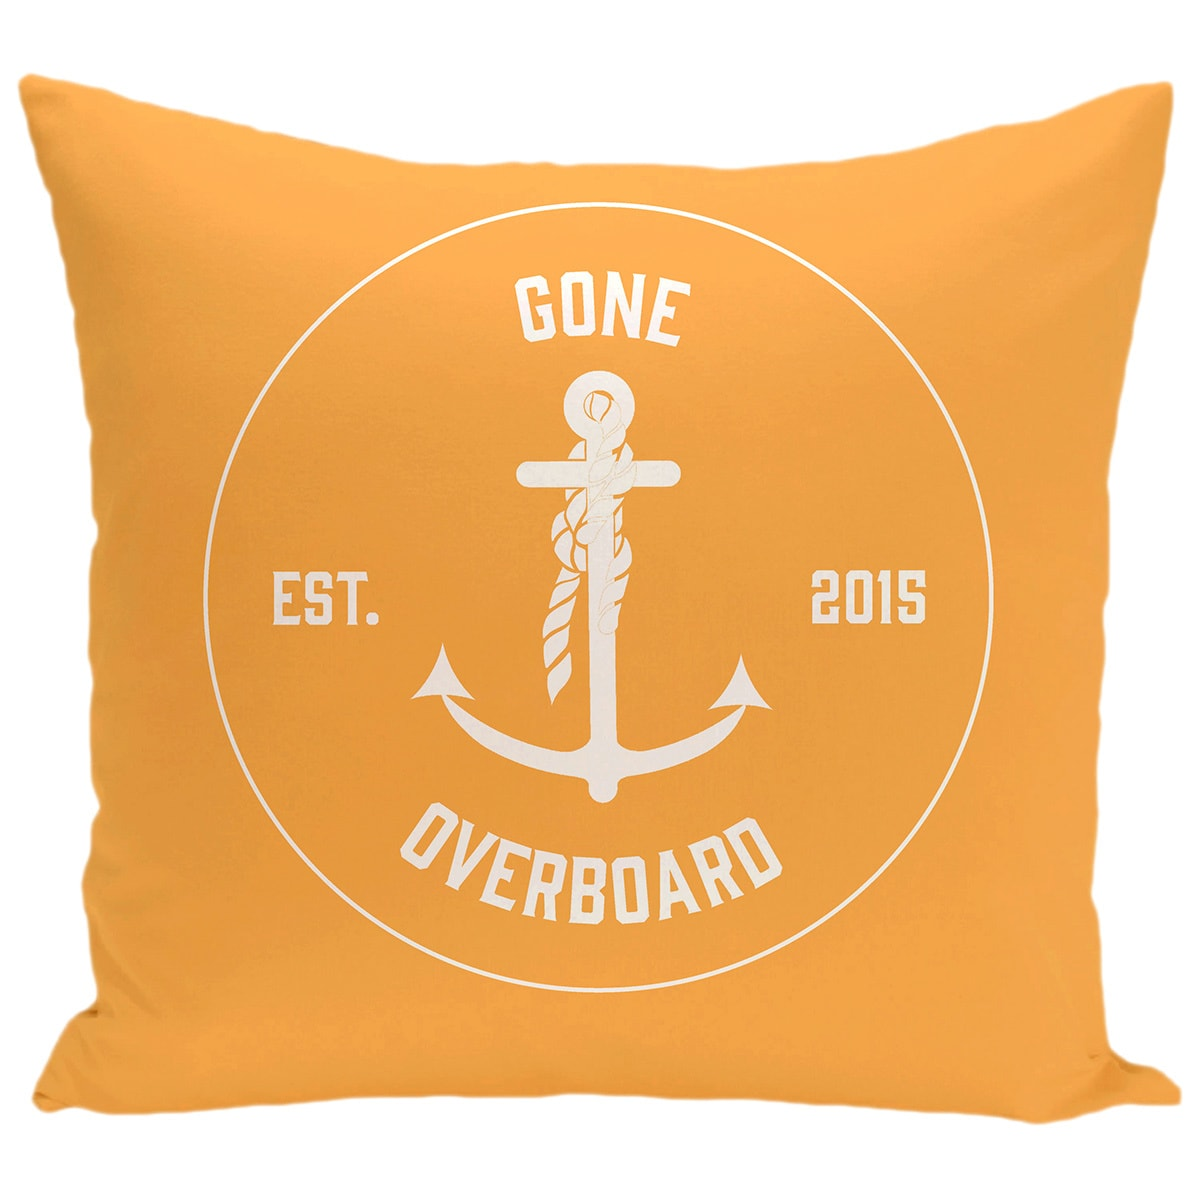 Gone Overboard Word Print 26-inch Pillow (Green)